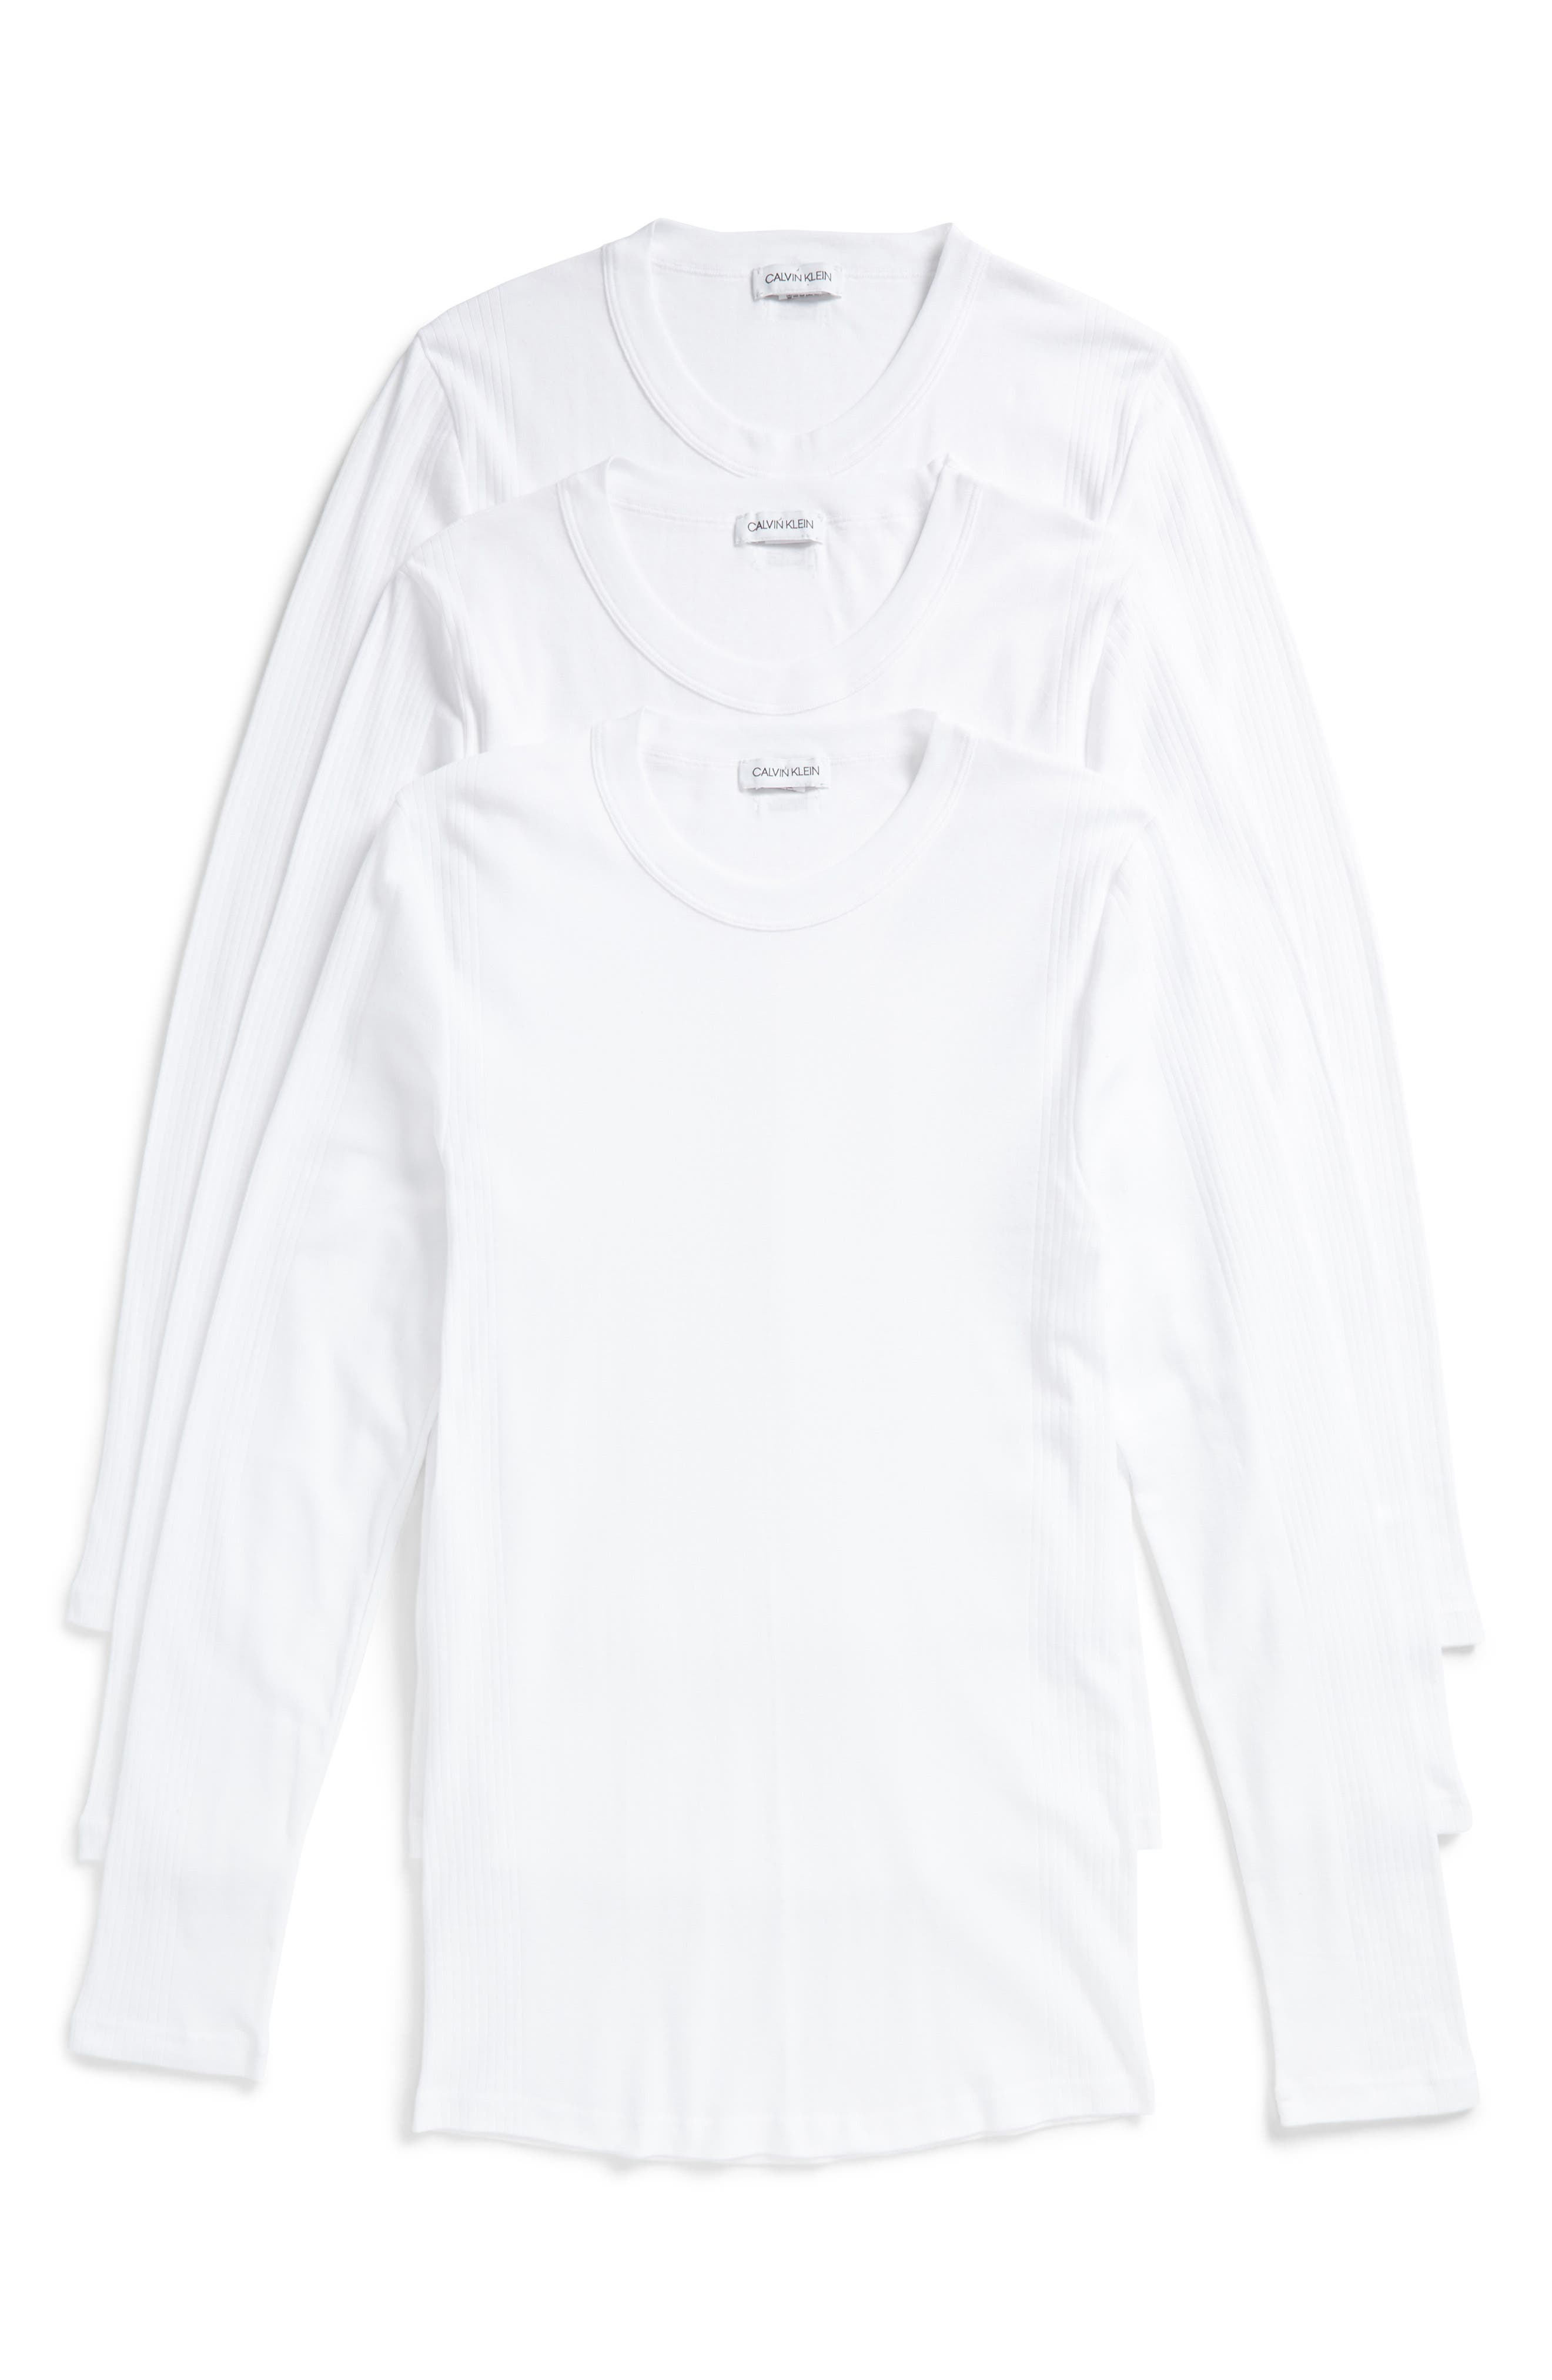 Main Image - Calvin Klein 205W39NYC Concept Luxury 3-Pack Long Sleeve T-Shirt